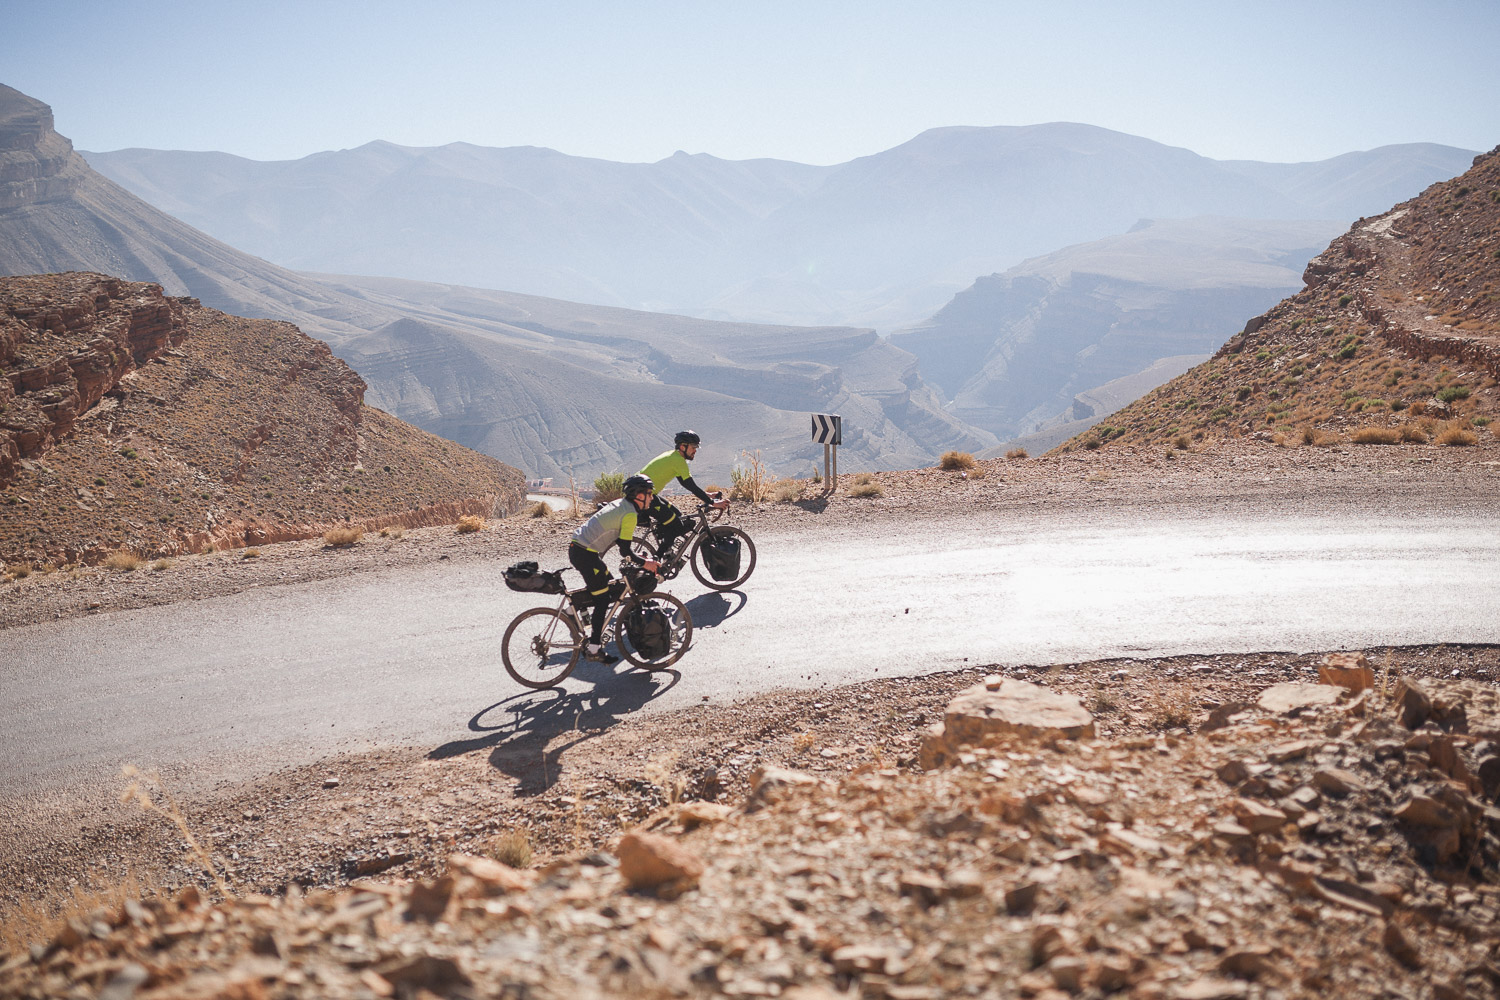 8bar bikes adventures morocco gravel 20151213 0115 bearbeitet 1 - 8bar Adventures - Morocco - High Atlas - Part 2/2